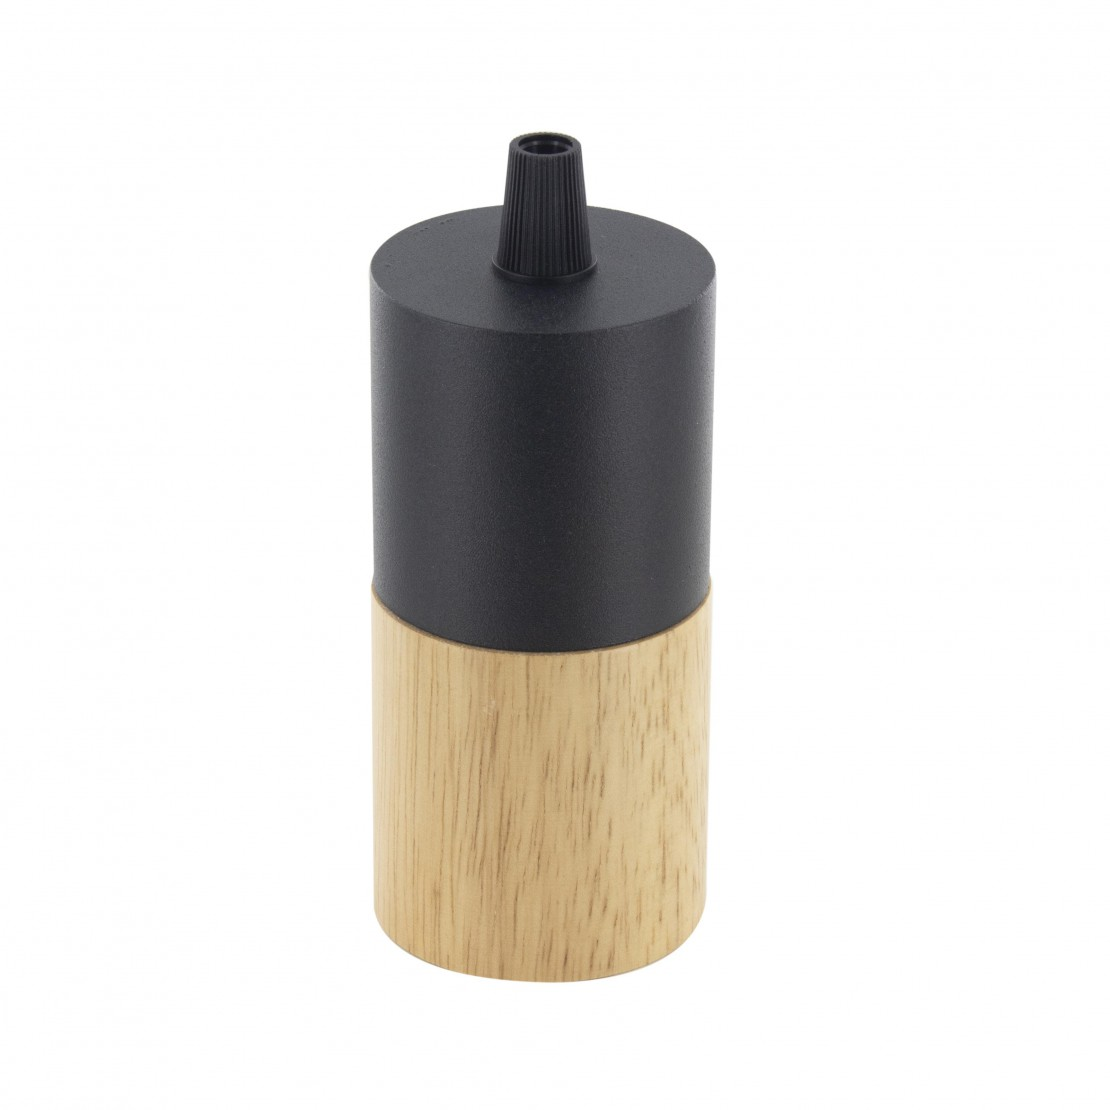 E27 wood and metal lamp holder, black